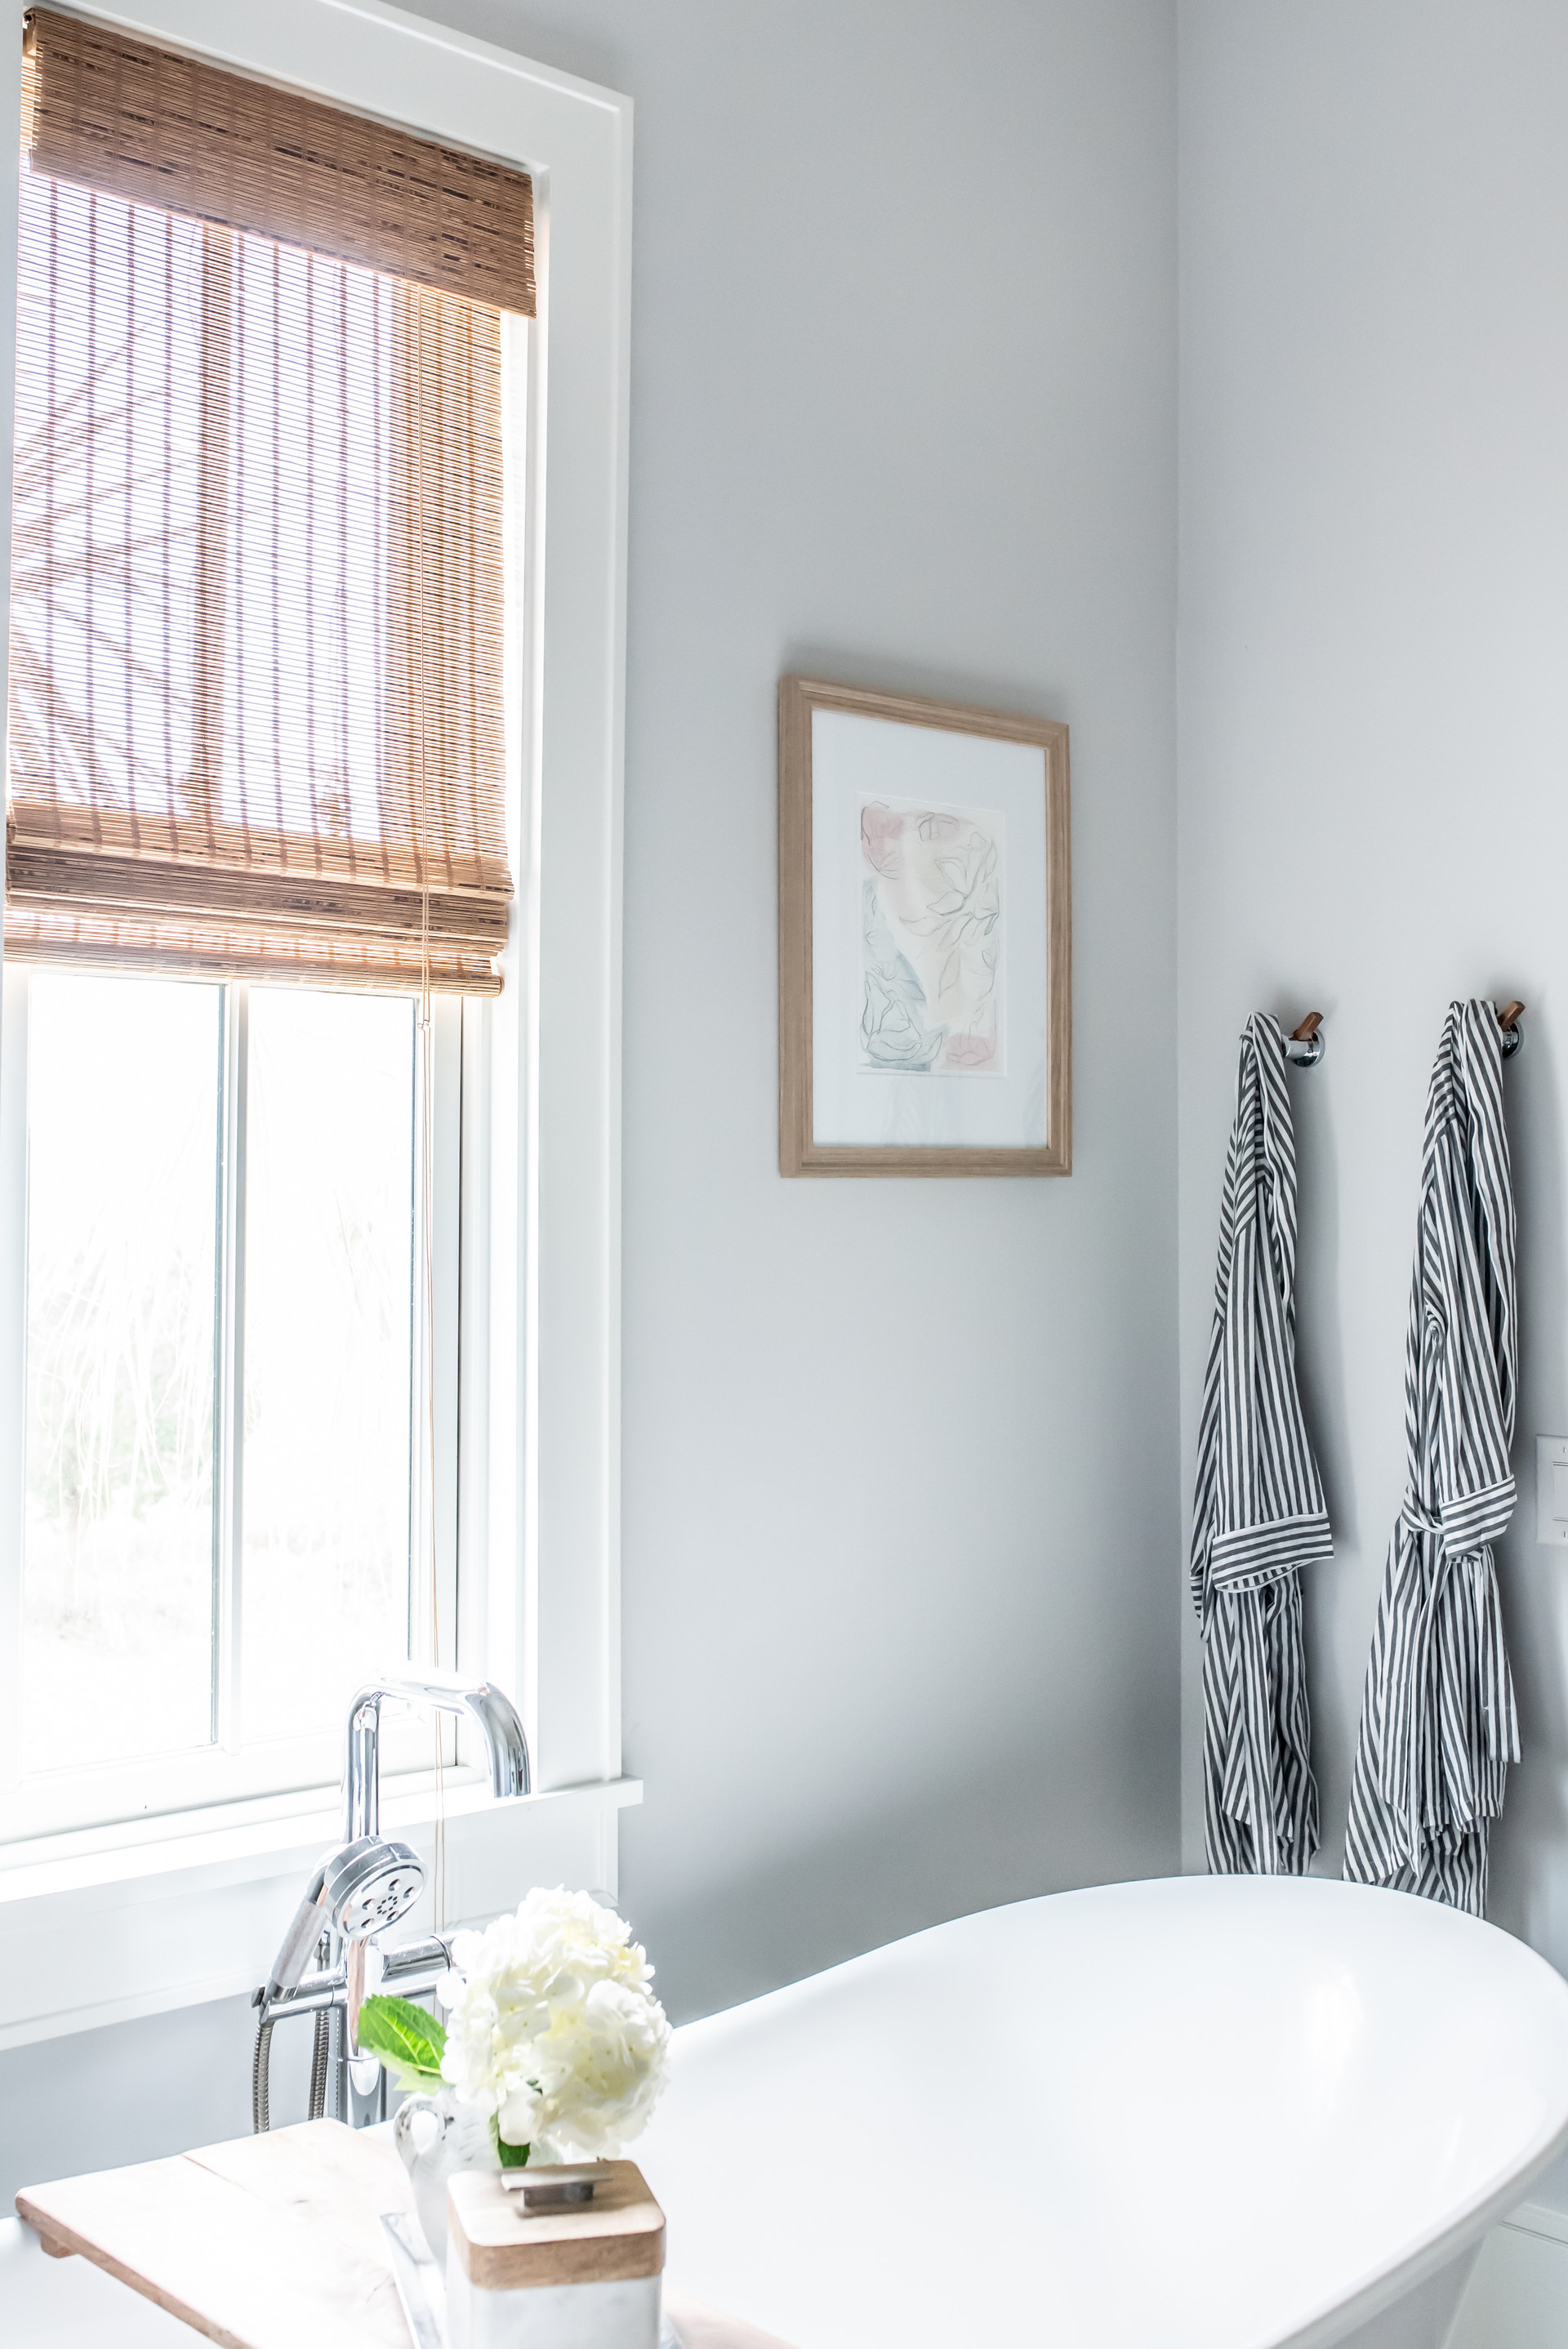 ADC-May1-2019-Master-Bathroom-11.jpg